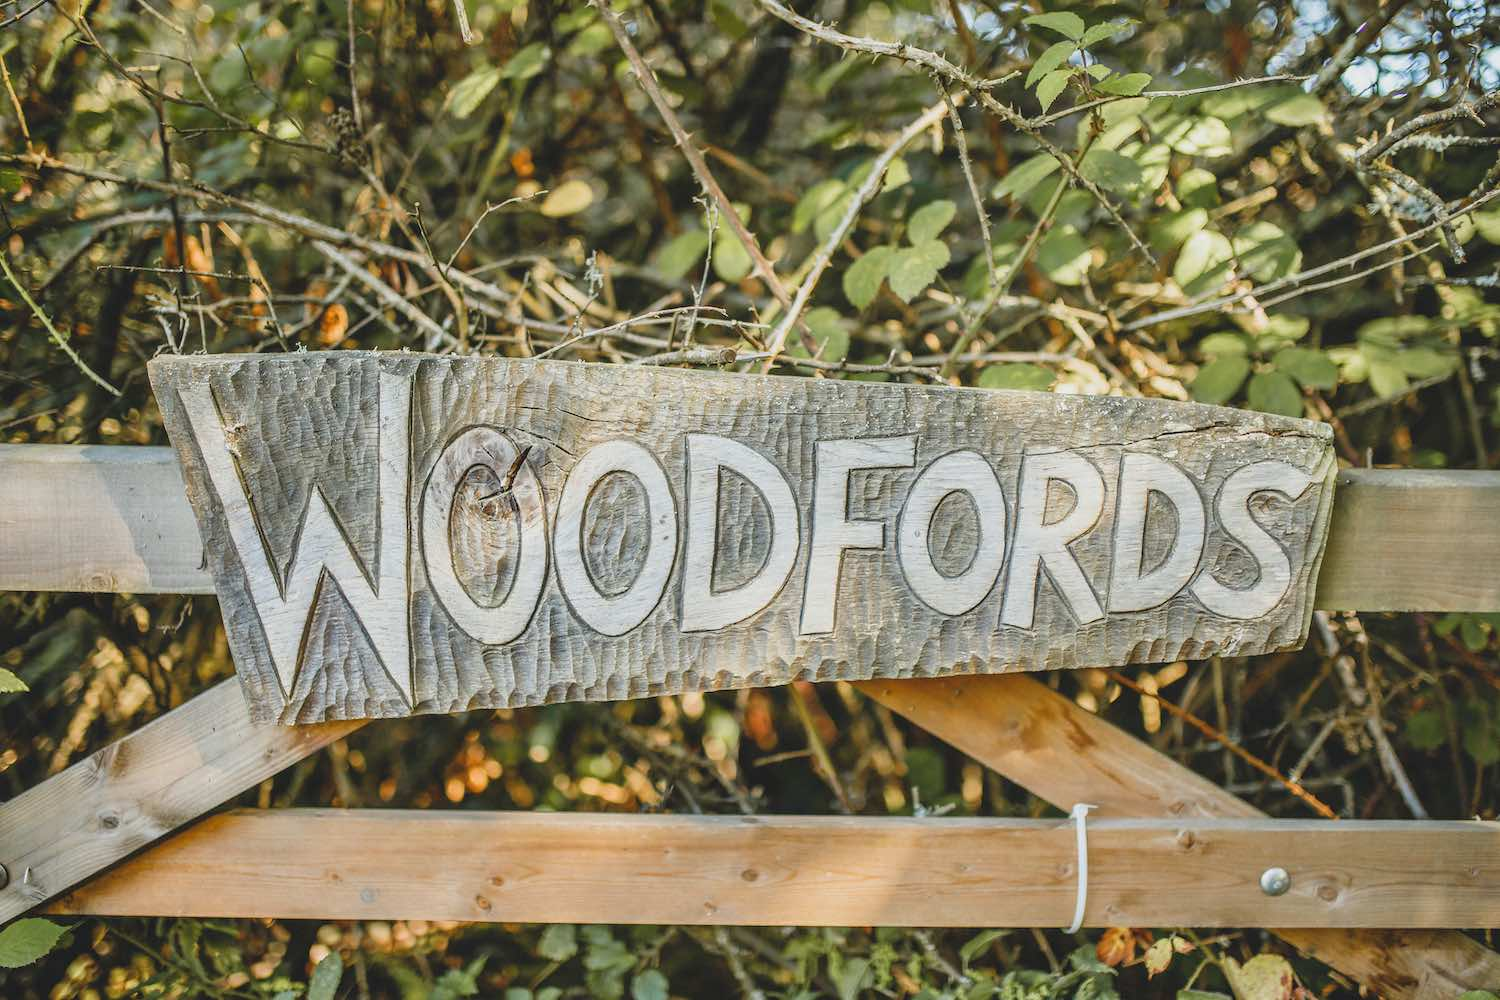 Woodfords sign on farmgate